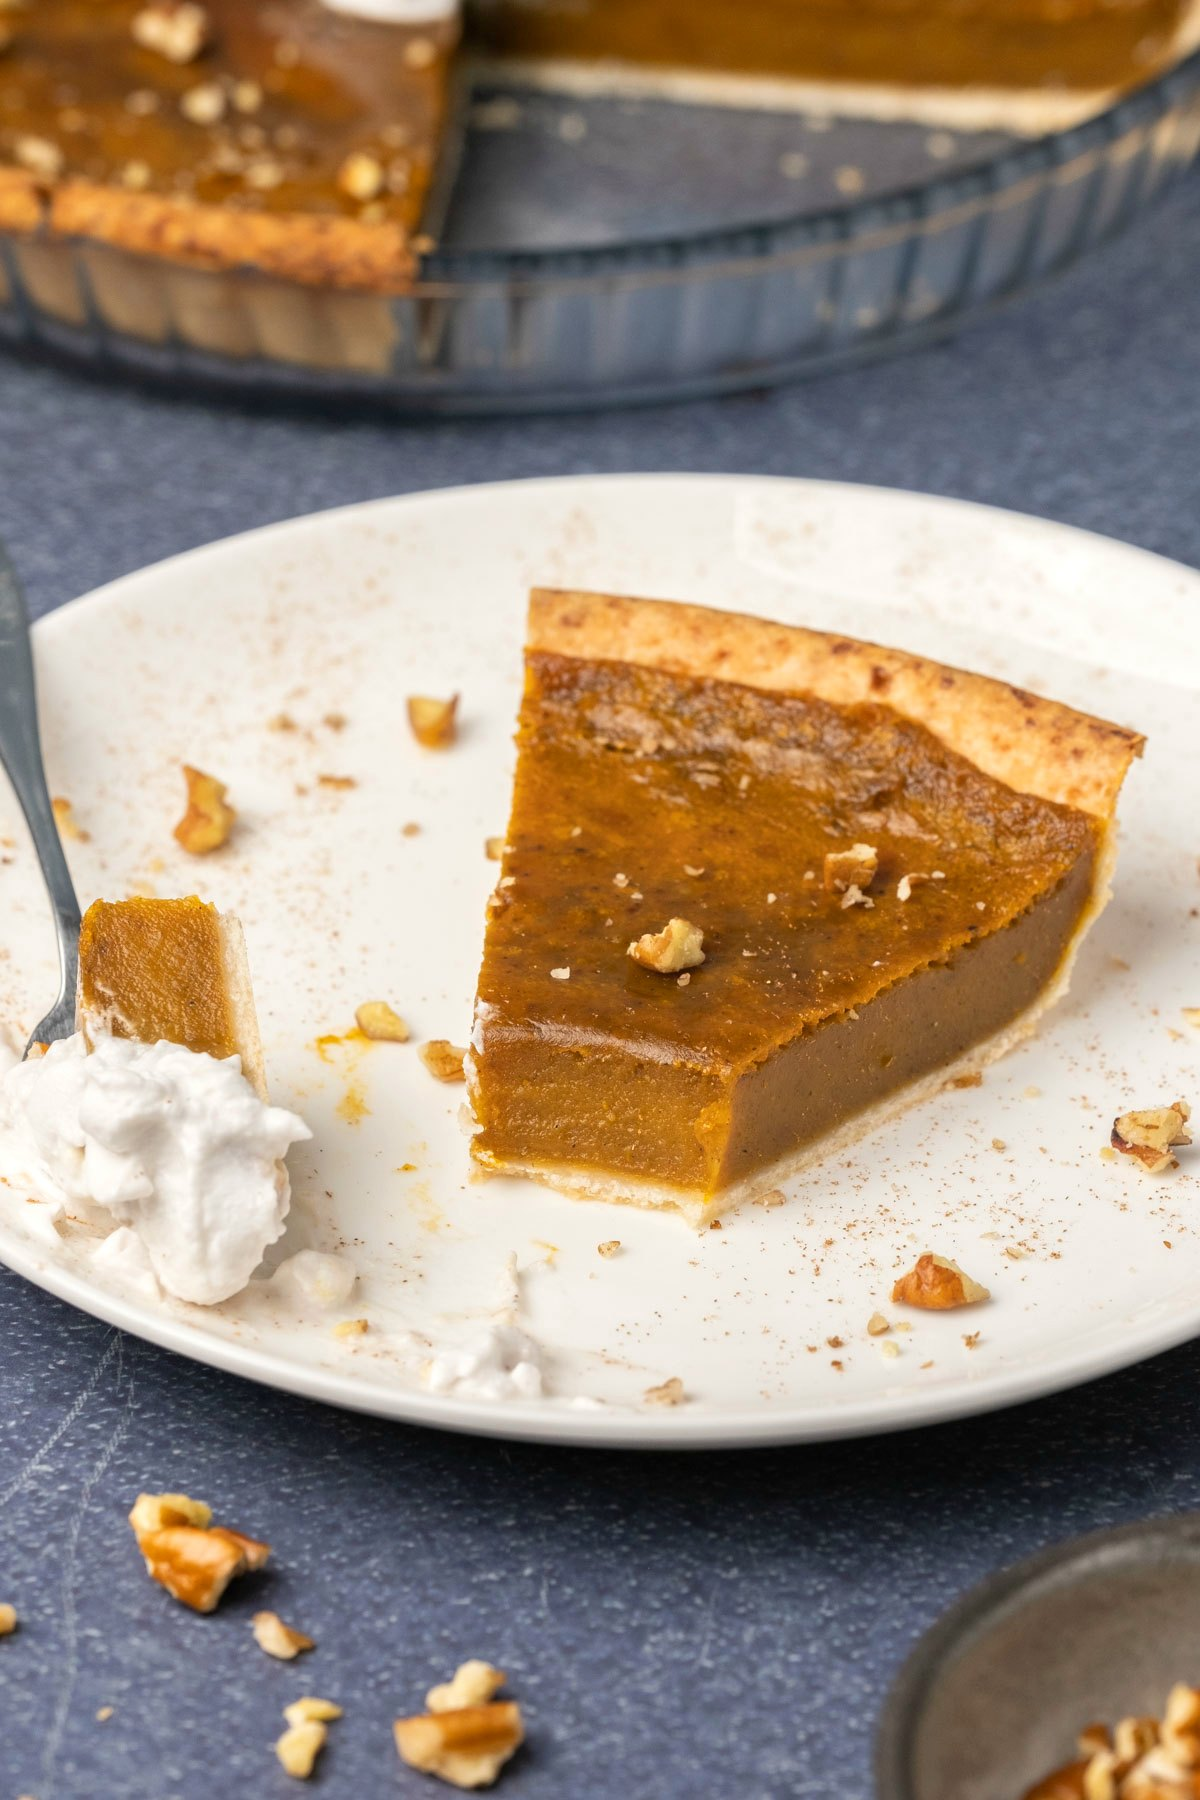 A slice of vegan sweet potato pie on a white plate with a cake fork.